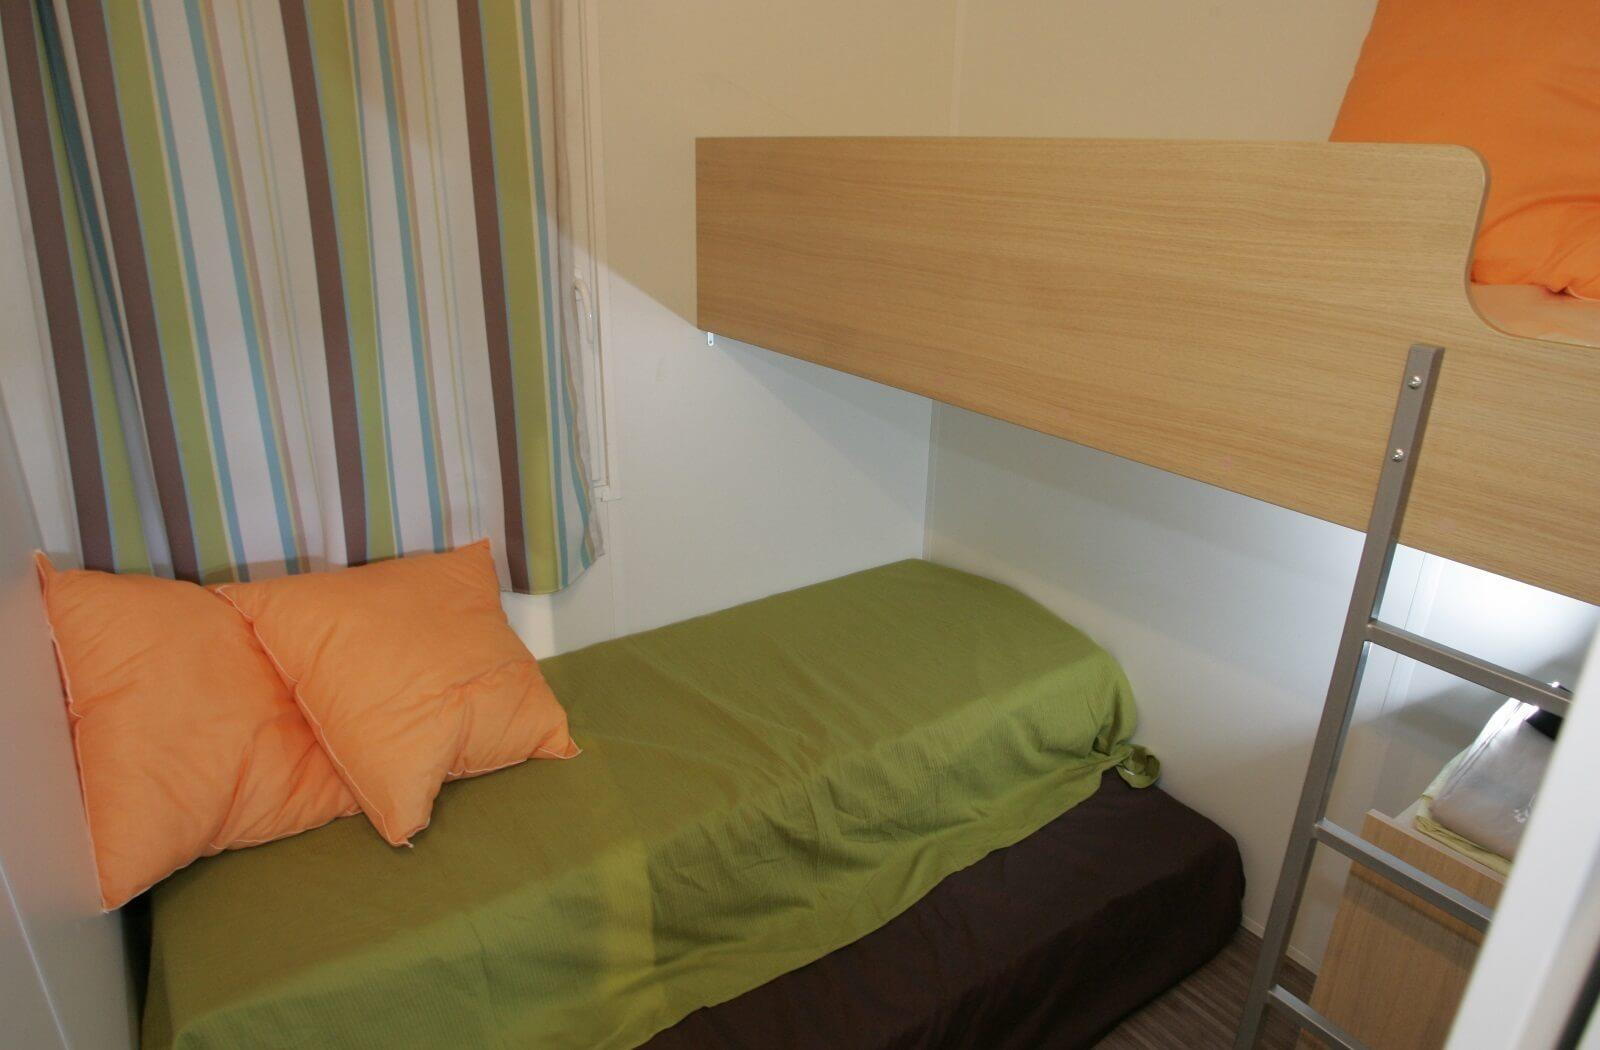 Location - Tit'home 2 Chambres 20,8 M² - Camping Les Mizottes